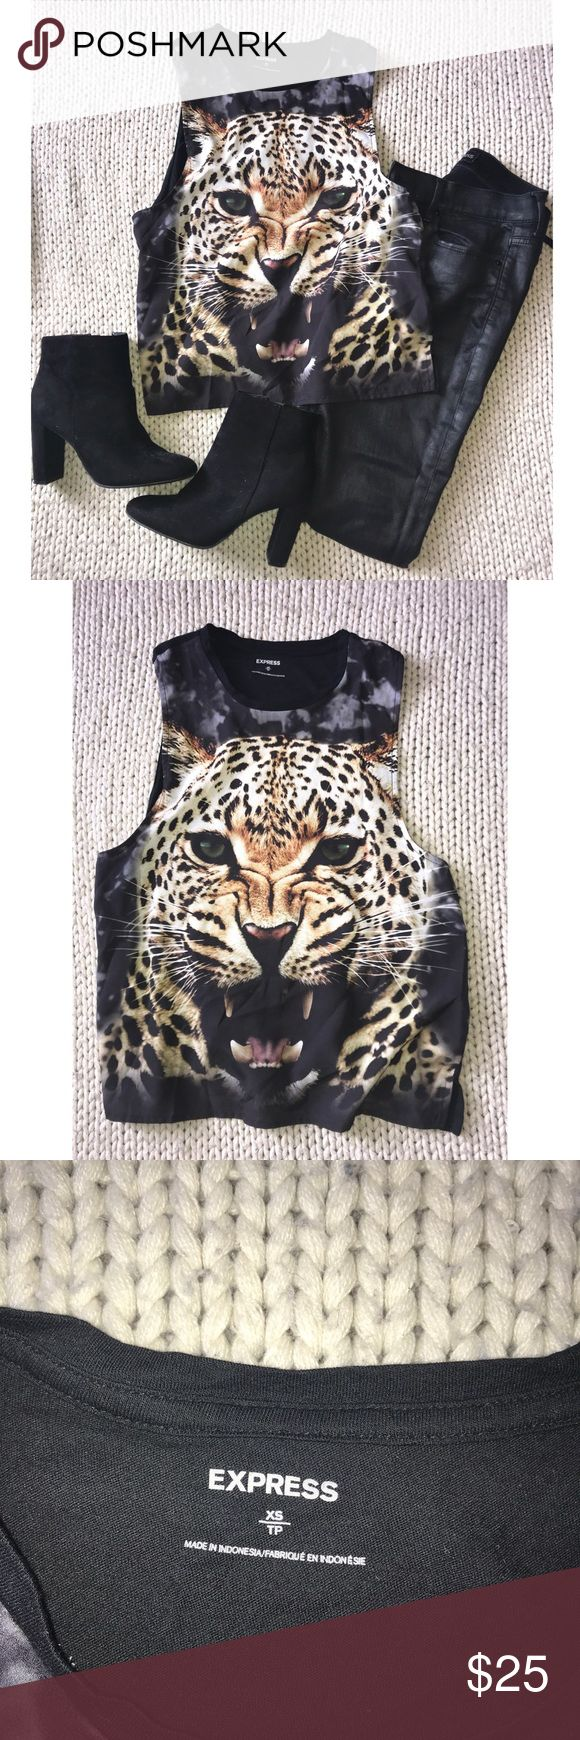 EXPRESS Tiger Muscle Tank Top Love this EXPRESS tiger muscle tank top!!!! Size XS. Worn once!!!! Super comfortable and lift material. Express Tops Tank Tops